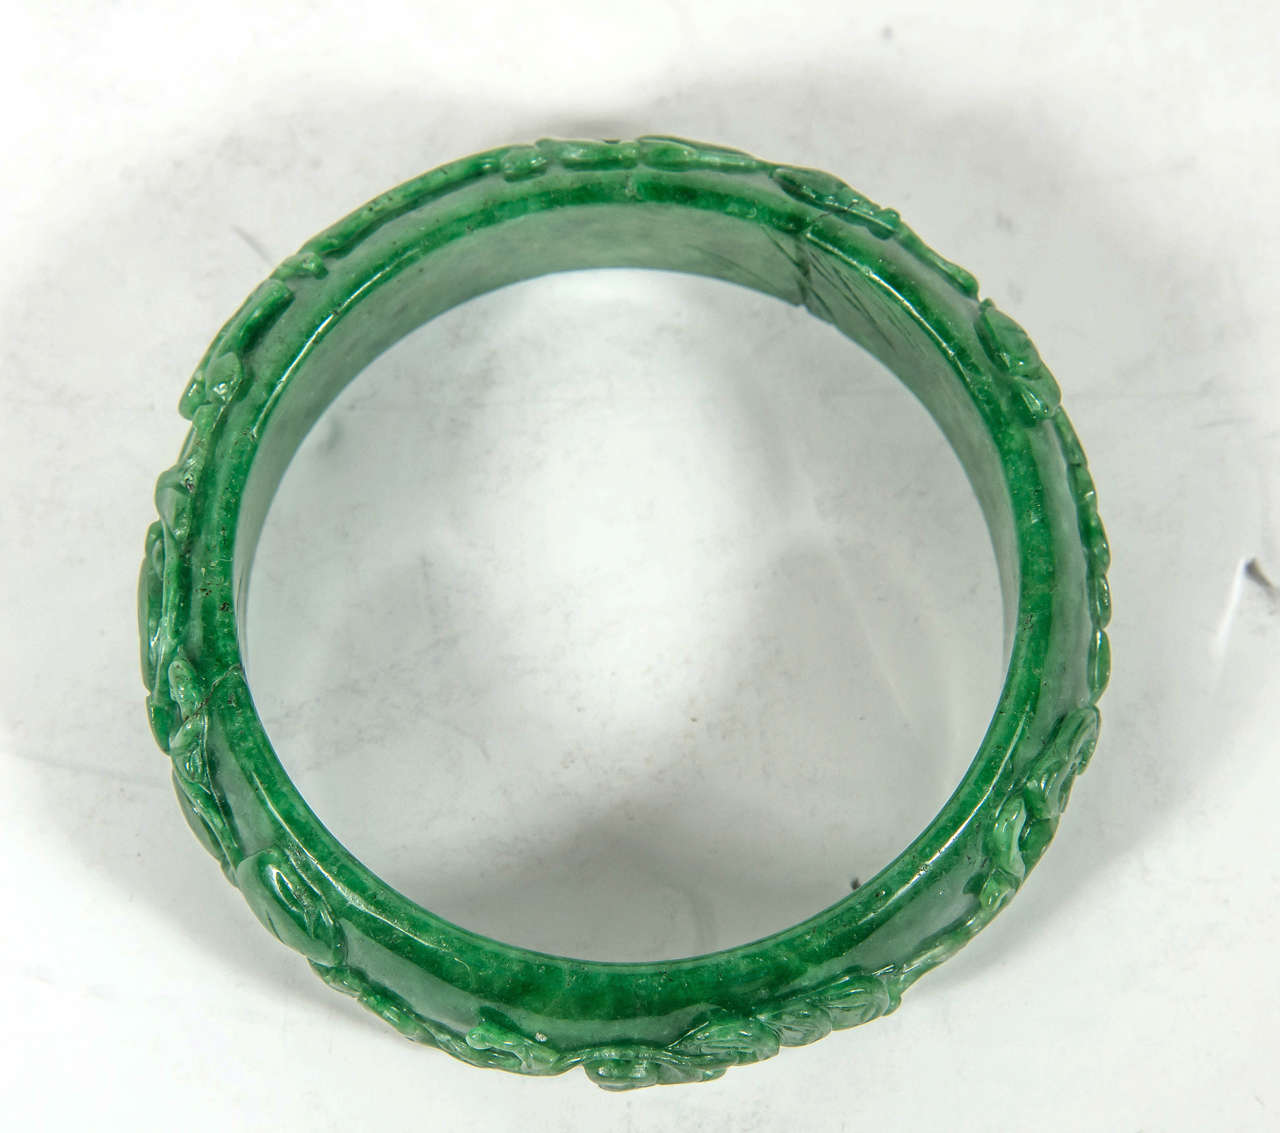 Exquisite Hand Carved Chinese Stylized Floral Scroll Design Stone Bangle In Excellent Condition For Sale In New York, NY